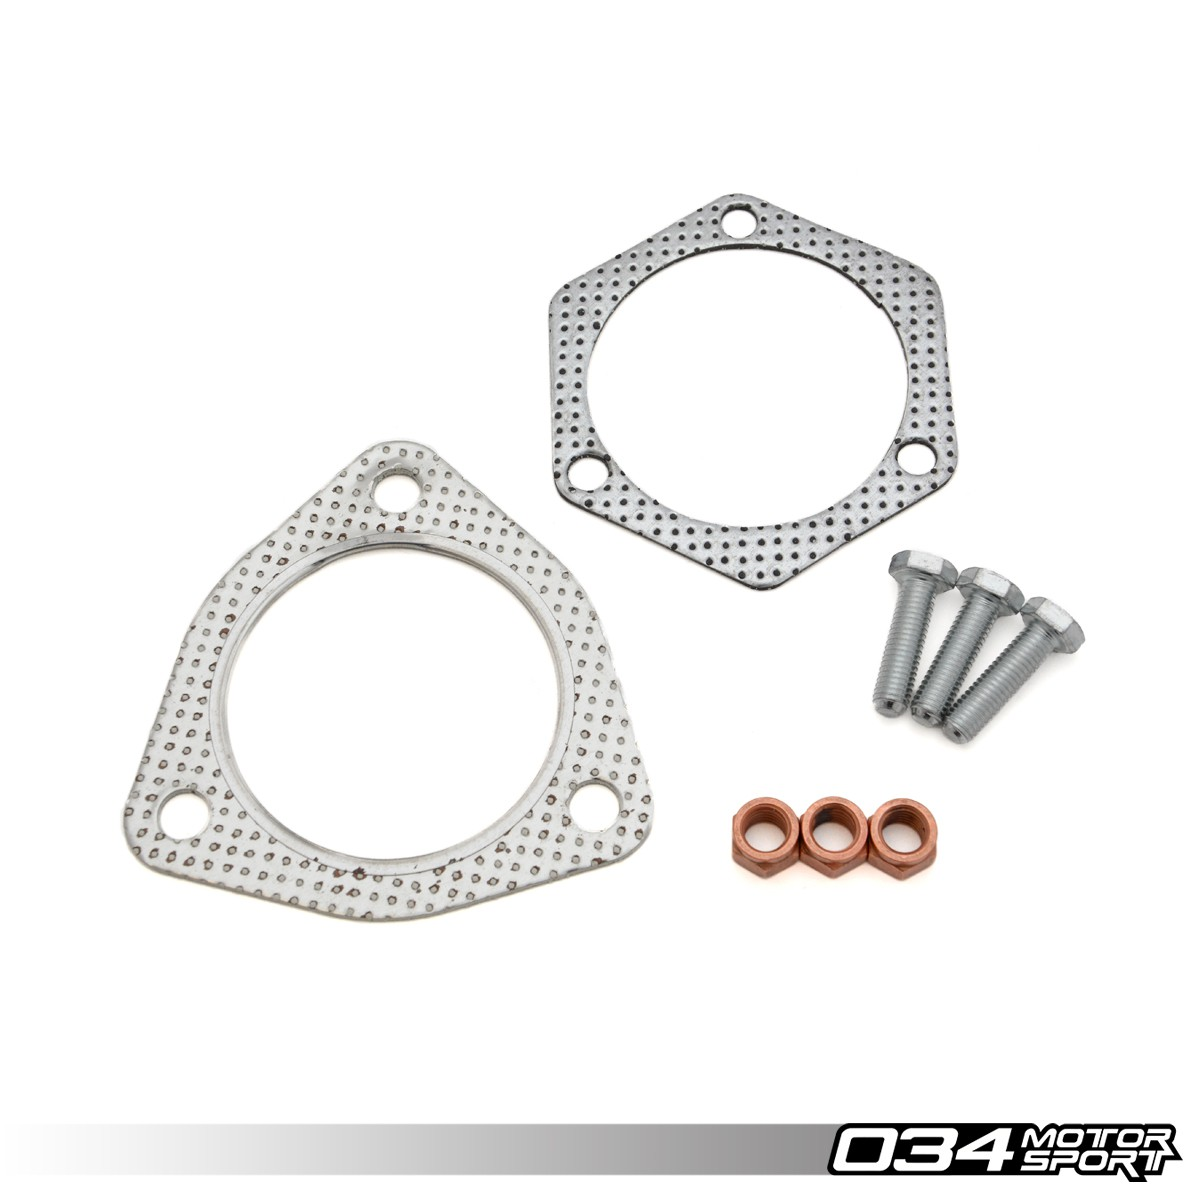 Gasket Kit, K03 / K04 Turbo 1.8T Longitudinal Applications | 034-105-A005